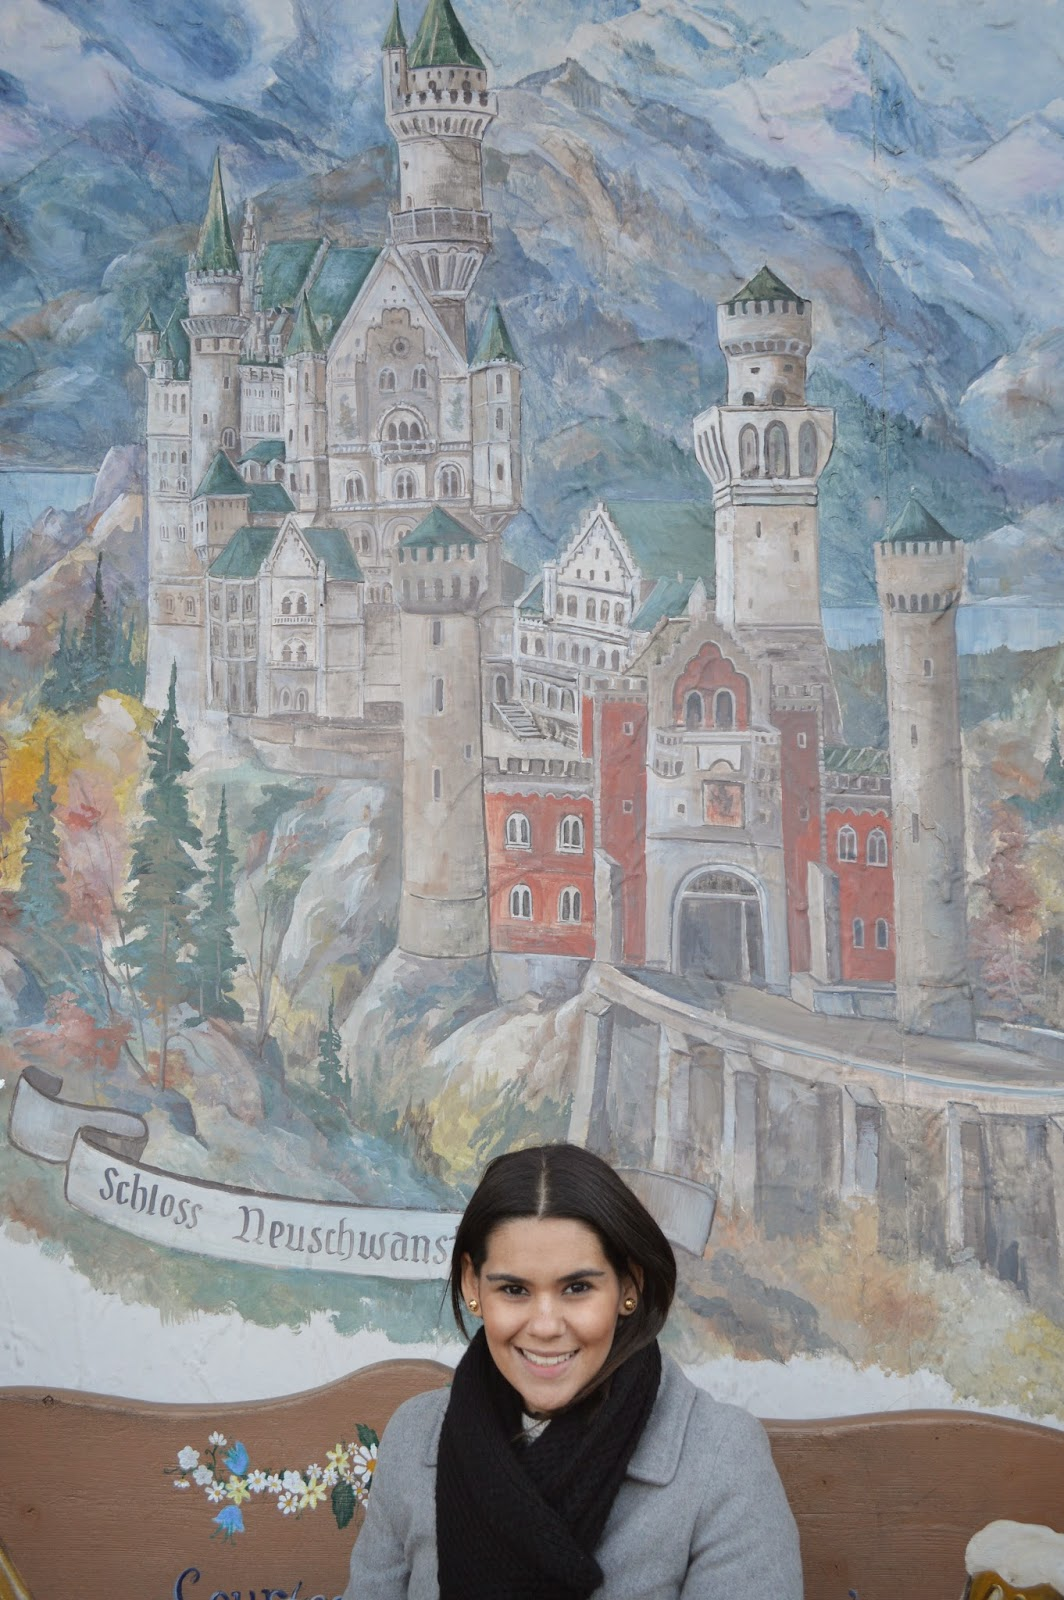 Neuschwanstein castle mural. Leavenworth